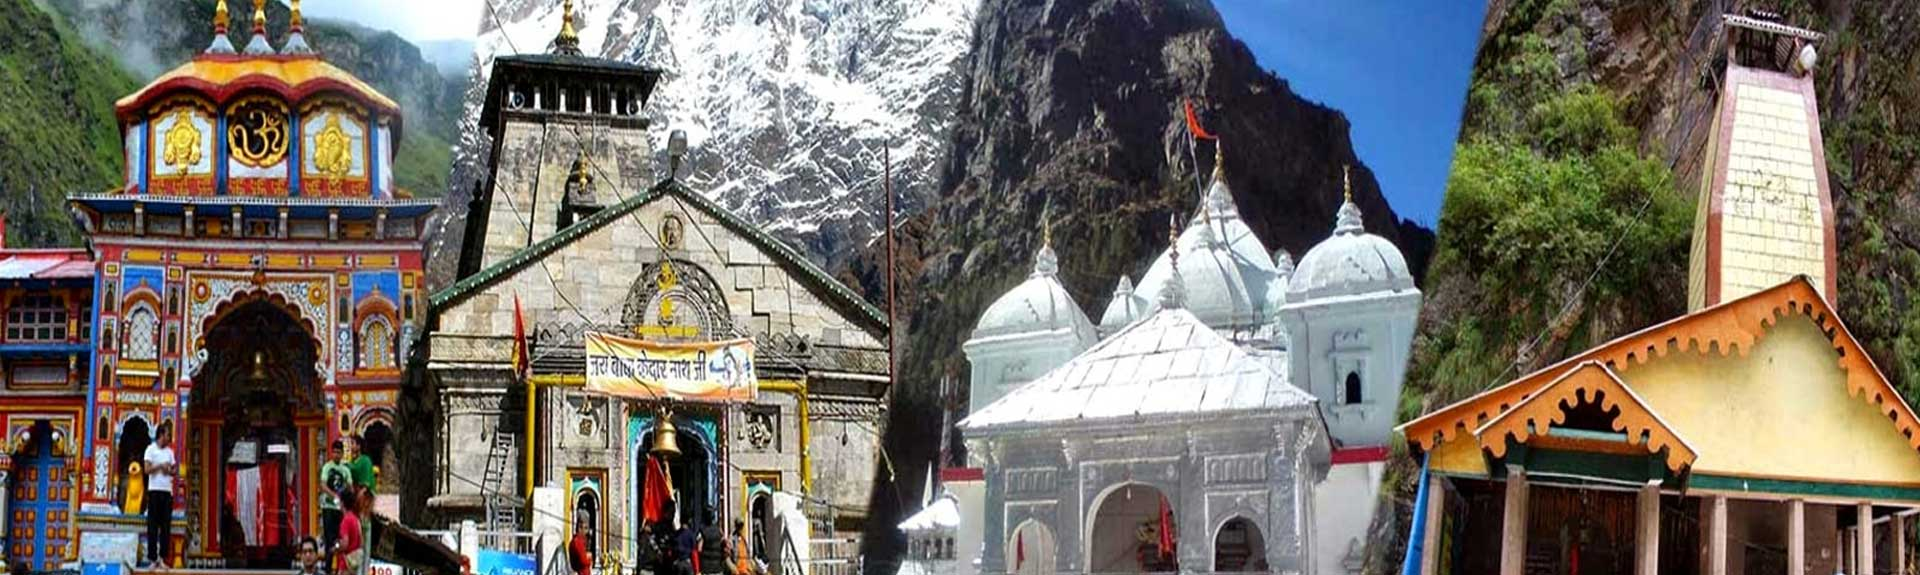 Char Dham Yatra Helicopter Package from Haridwar and Delhi